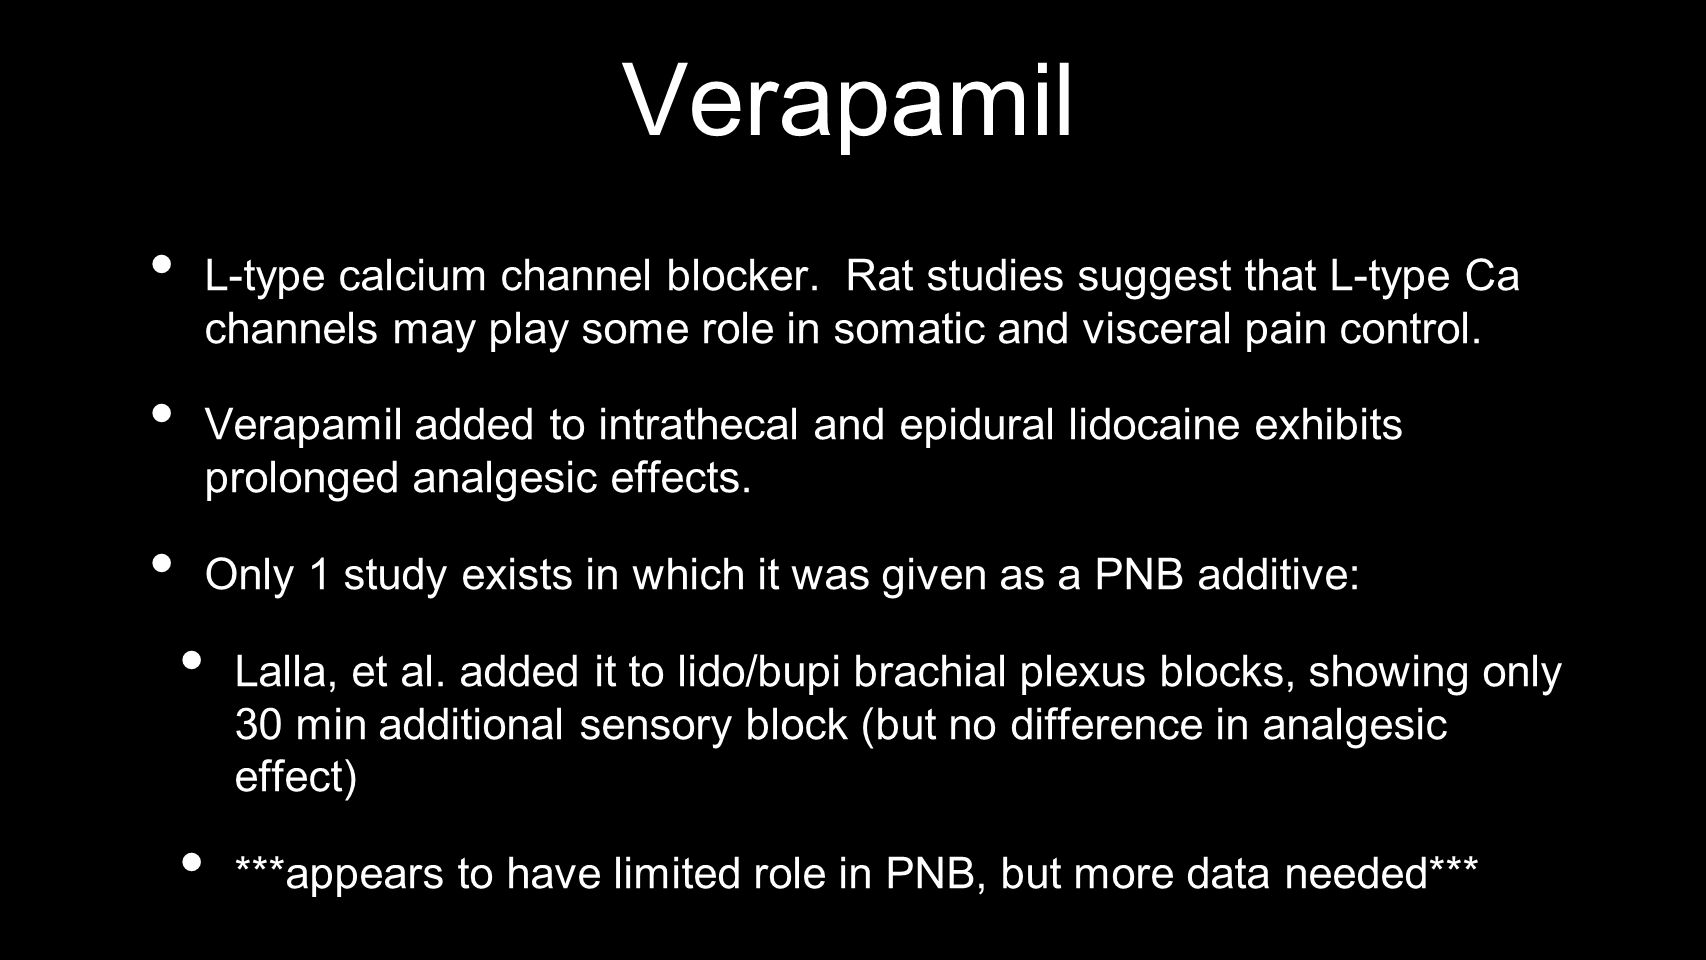 Verapamil L-type calcium channel blocker.